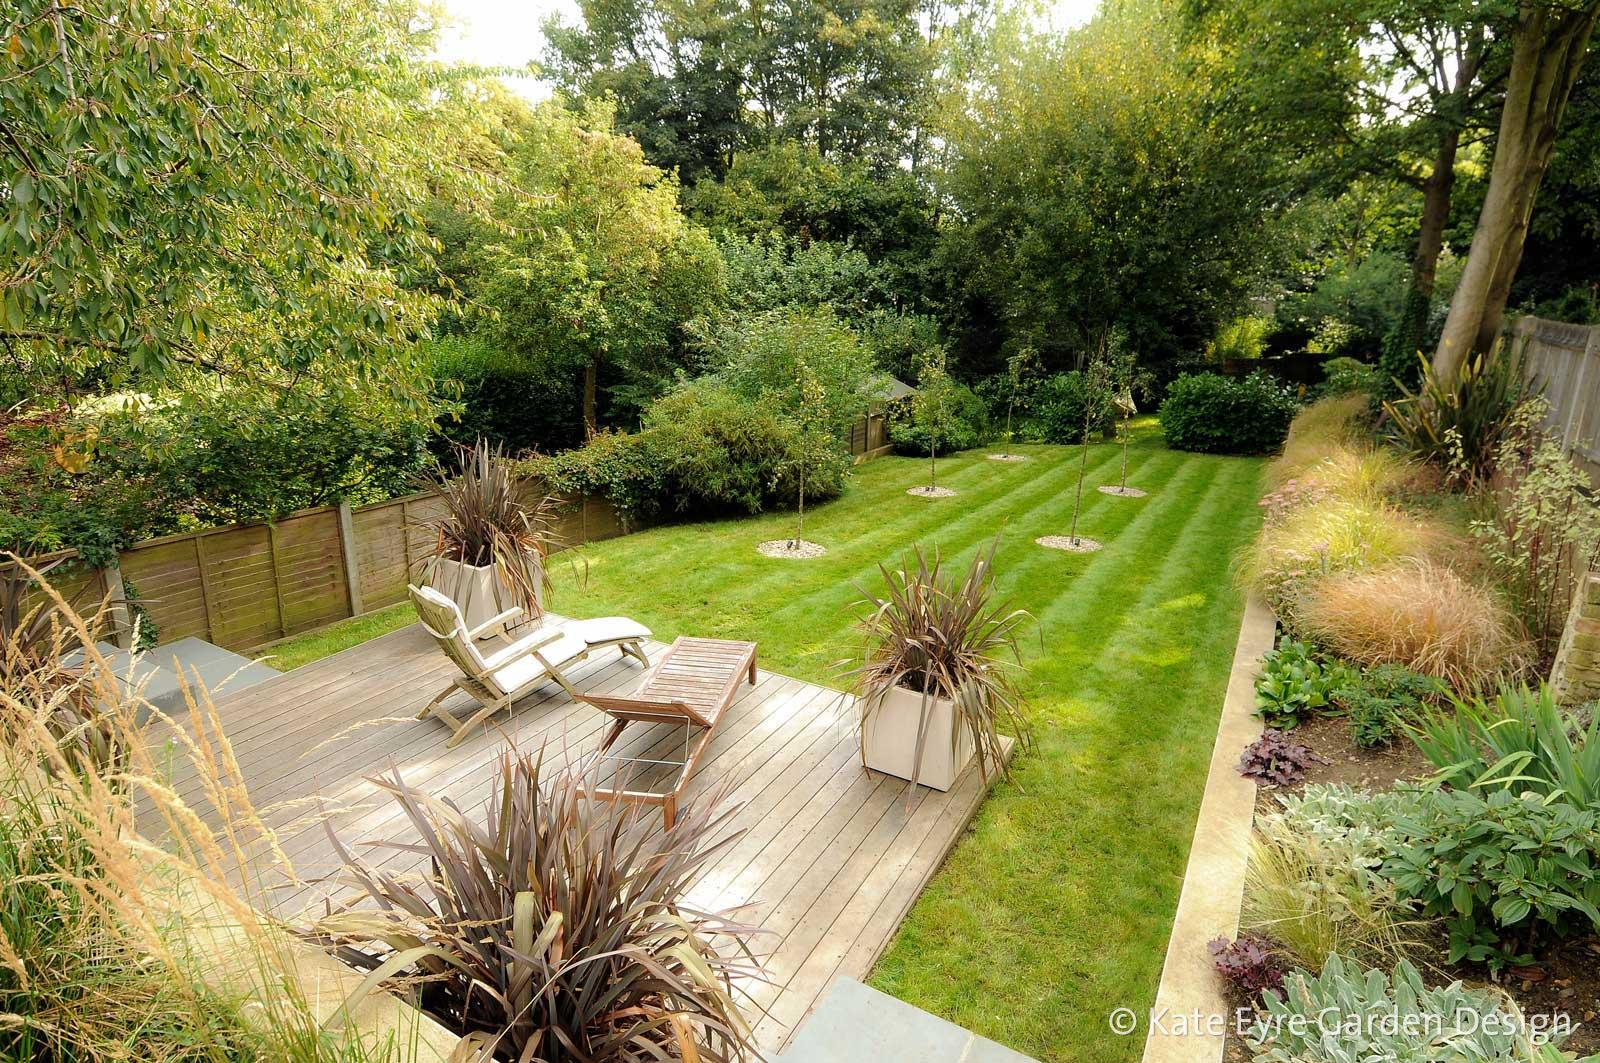 Garden design in crystal palace south east london for Latest garden design